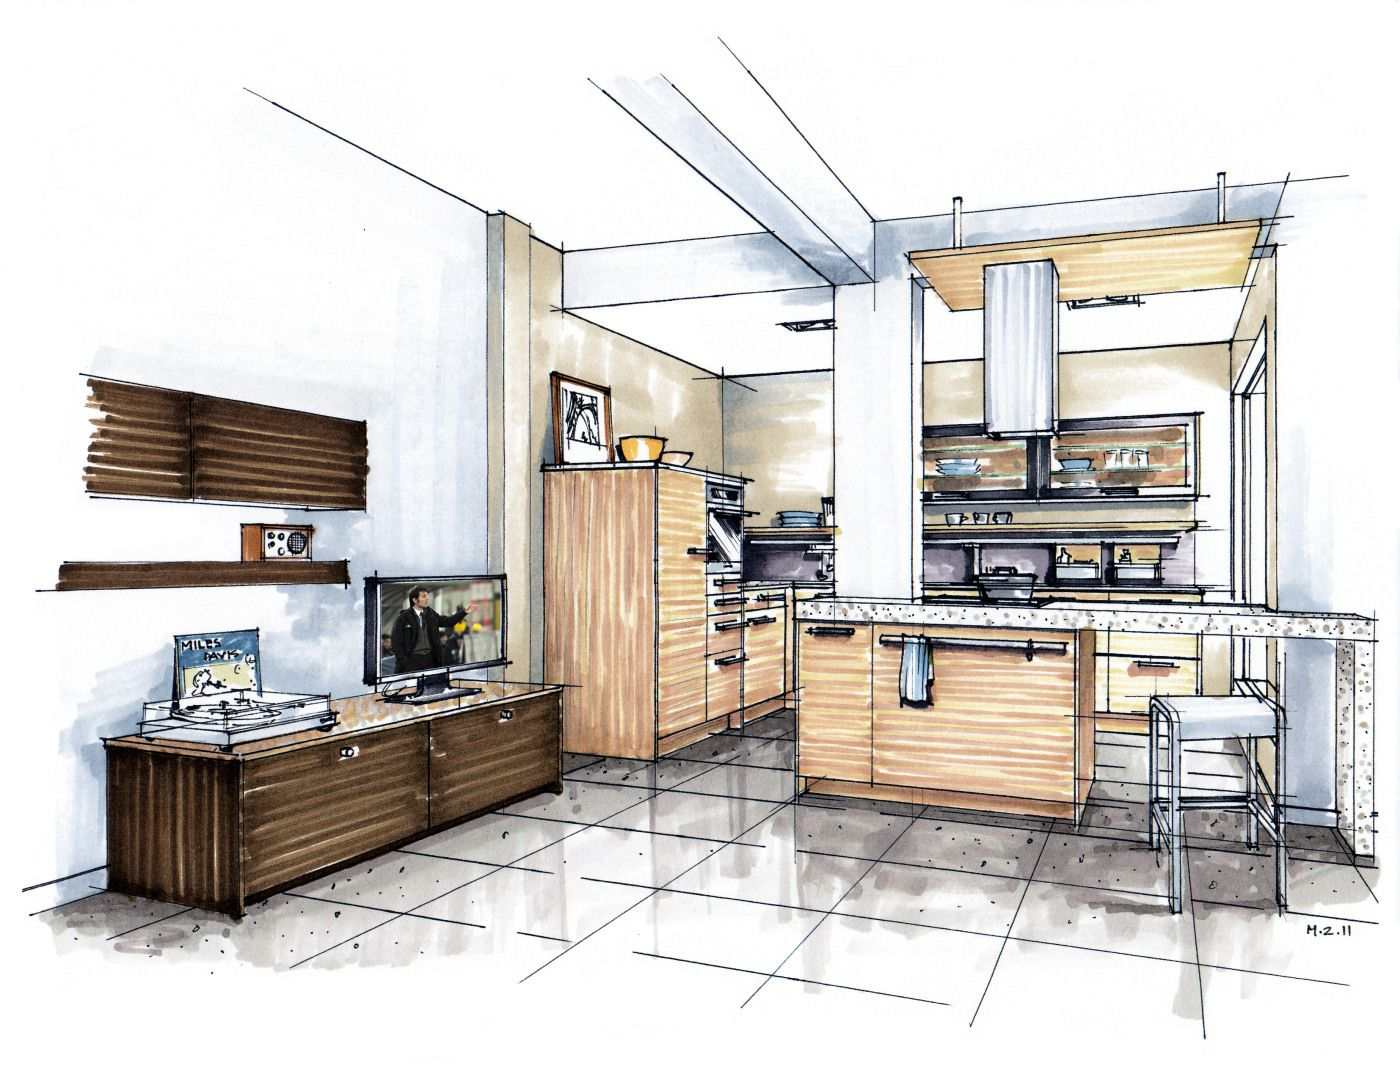 Display siematic compact design also showroom concept in middle east interior sketches pinterest rh